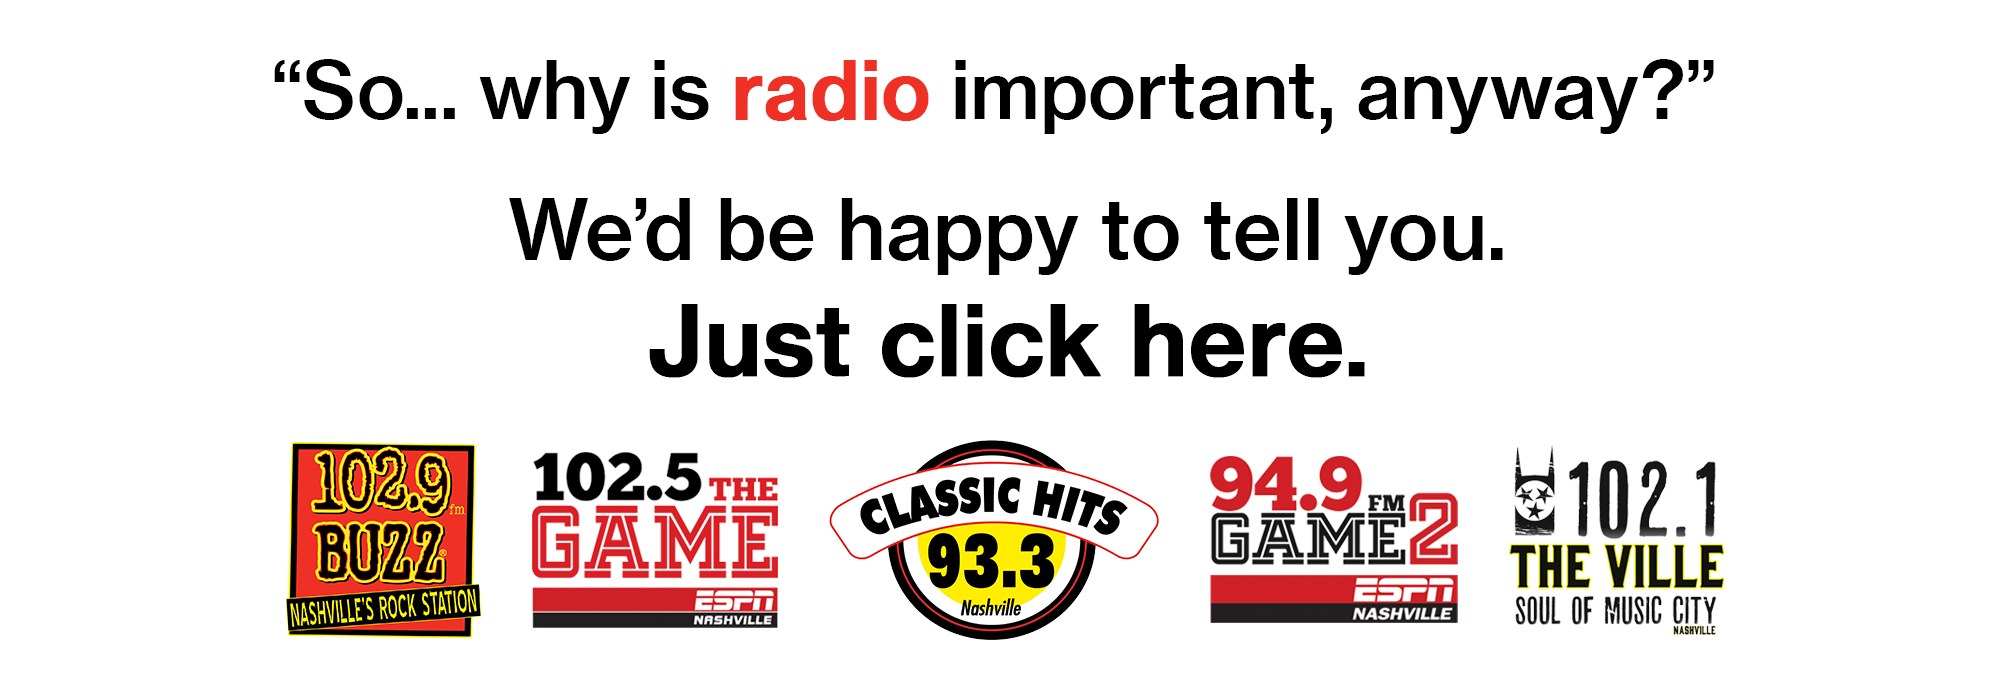 Feature: https://www.933classichits.com/advertising